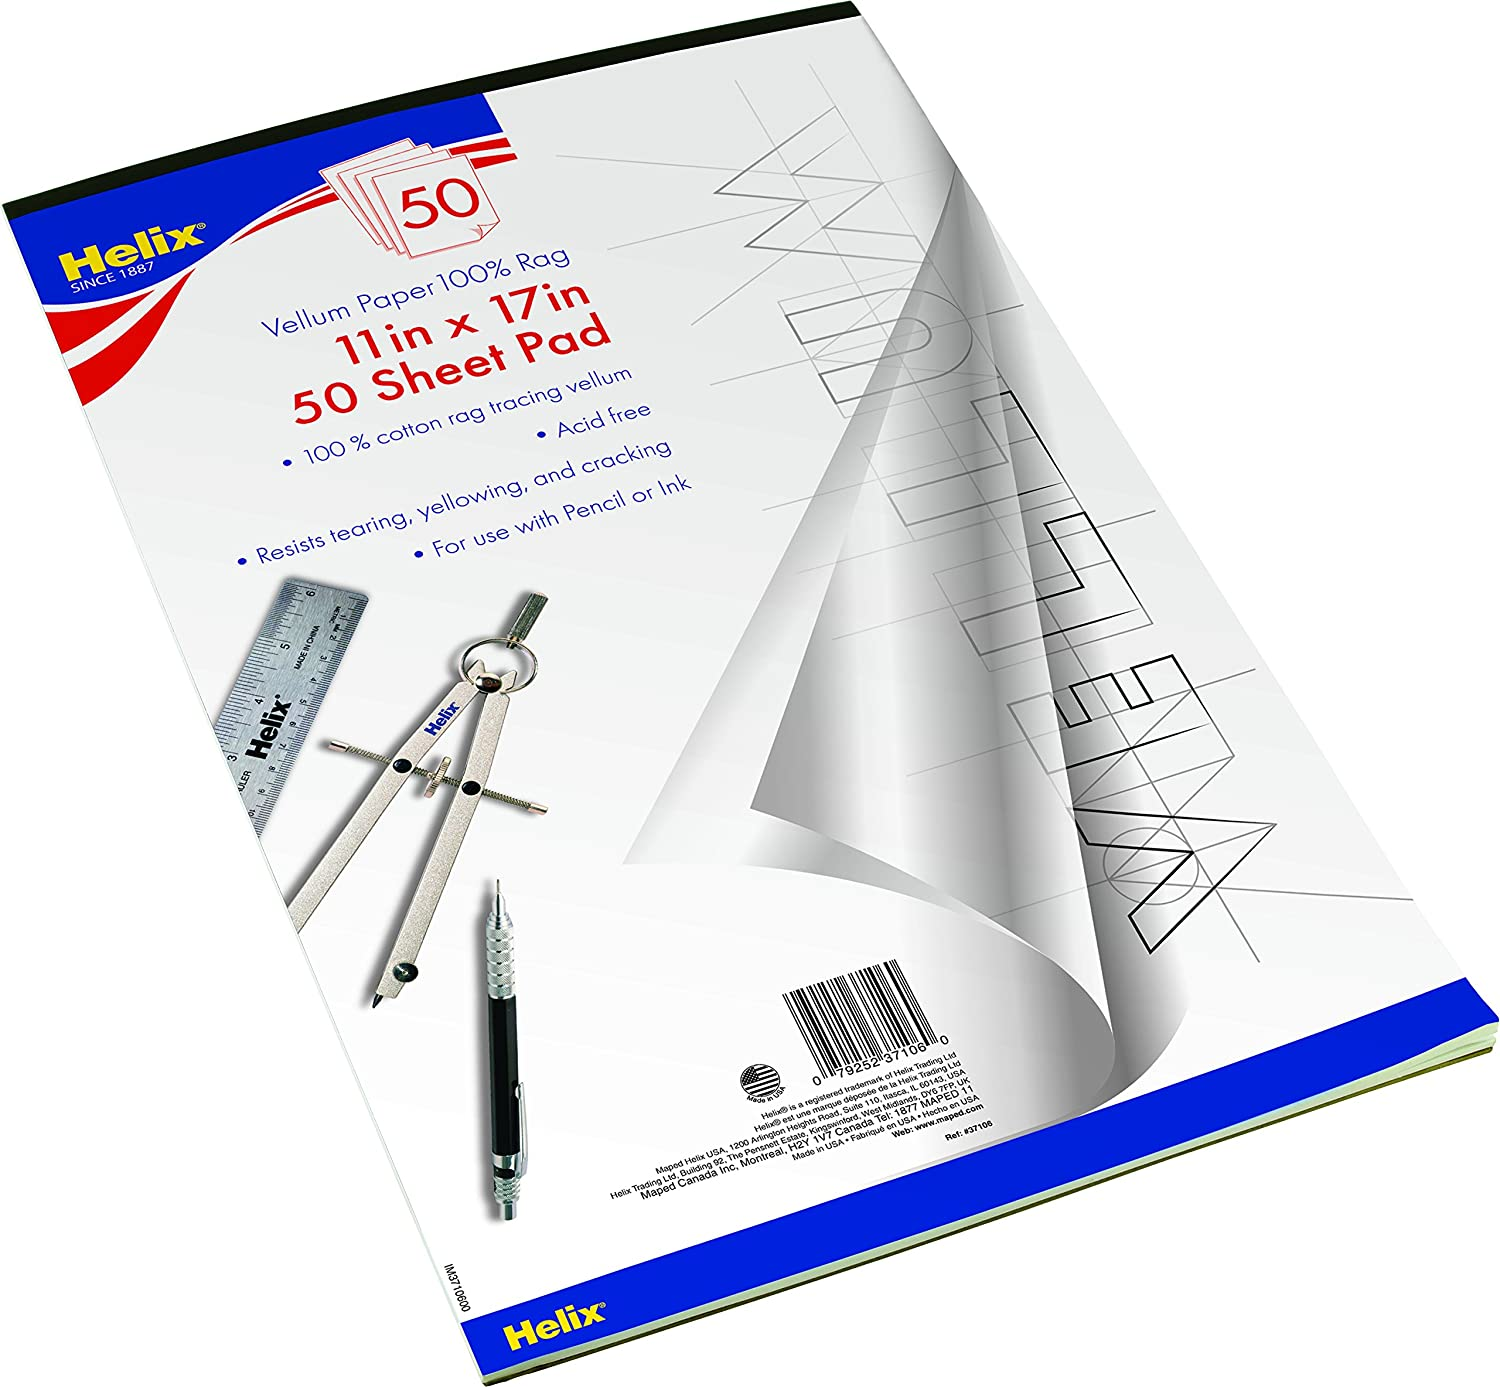 Amazon helix vellum paper pad 100 rag 11 inch x 17 inch 50 amazon helix vellum paper pad 100 rag 11 inch x 17 inch 50 sheets 37106 art supplies office products malvernweather Images